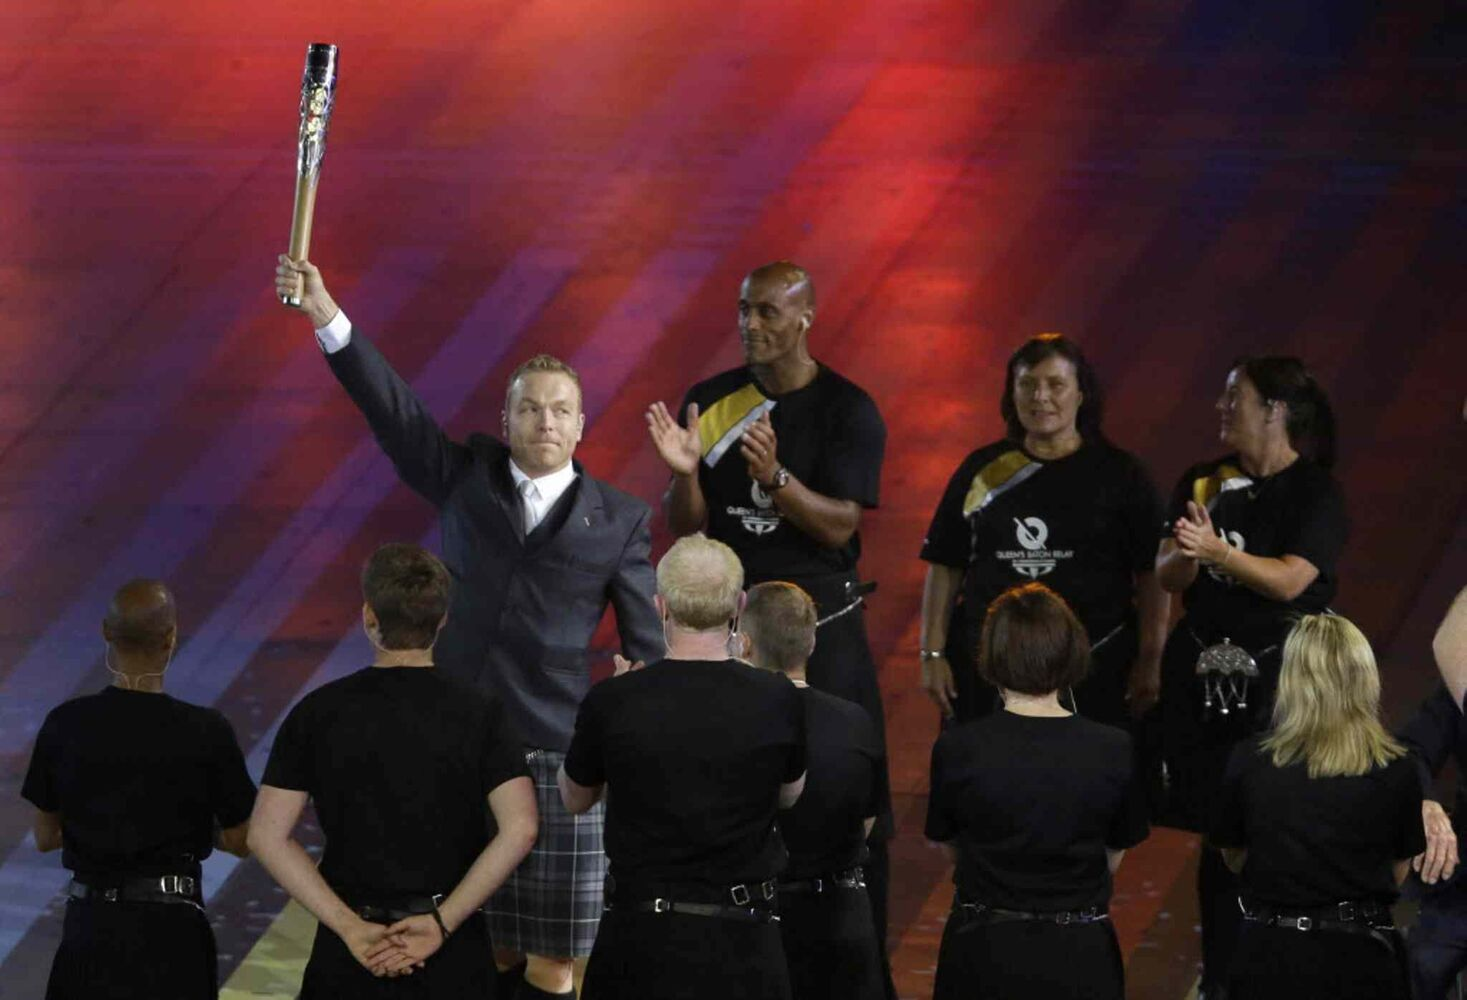 Sir Chris Hoy holds up the Queen's baton during the opening ceremony for the Commonwealth Games 2014. (Kirsty Wigglesworth / The Associated Press)